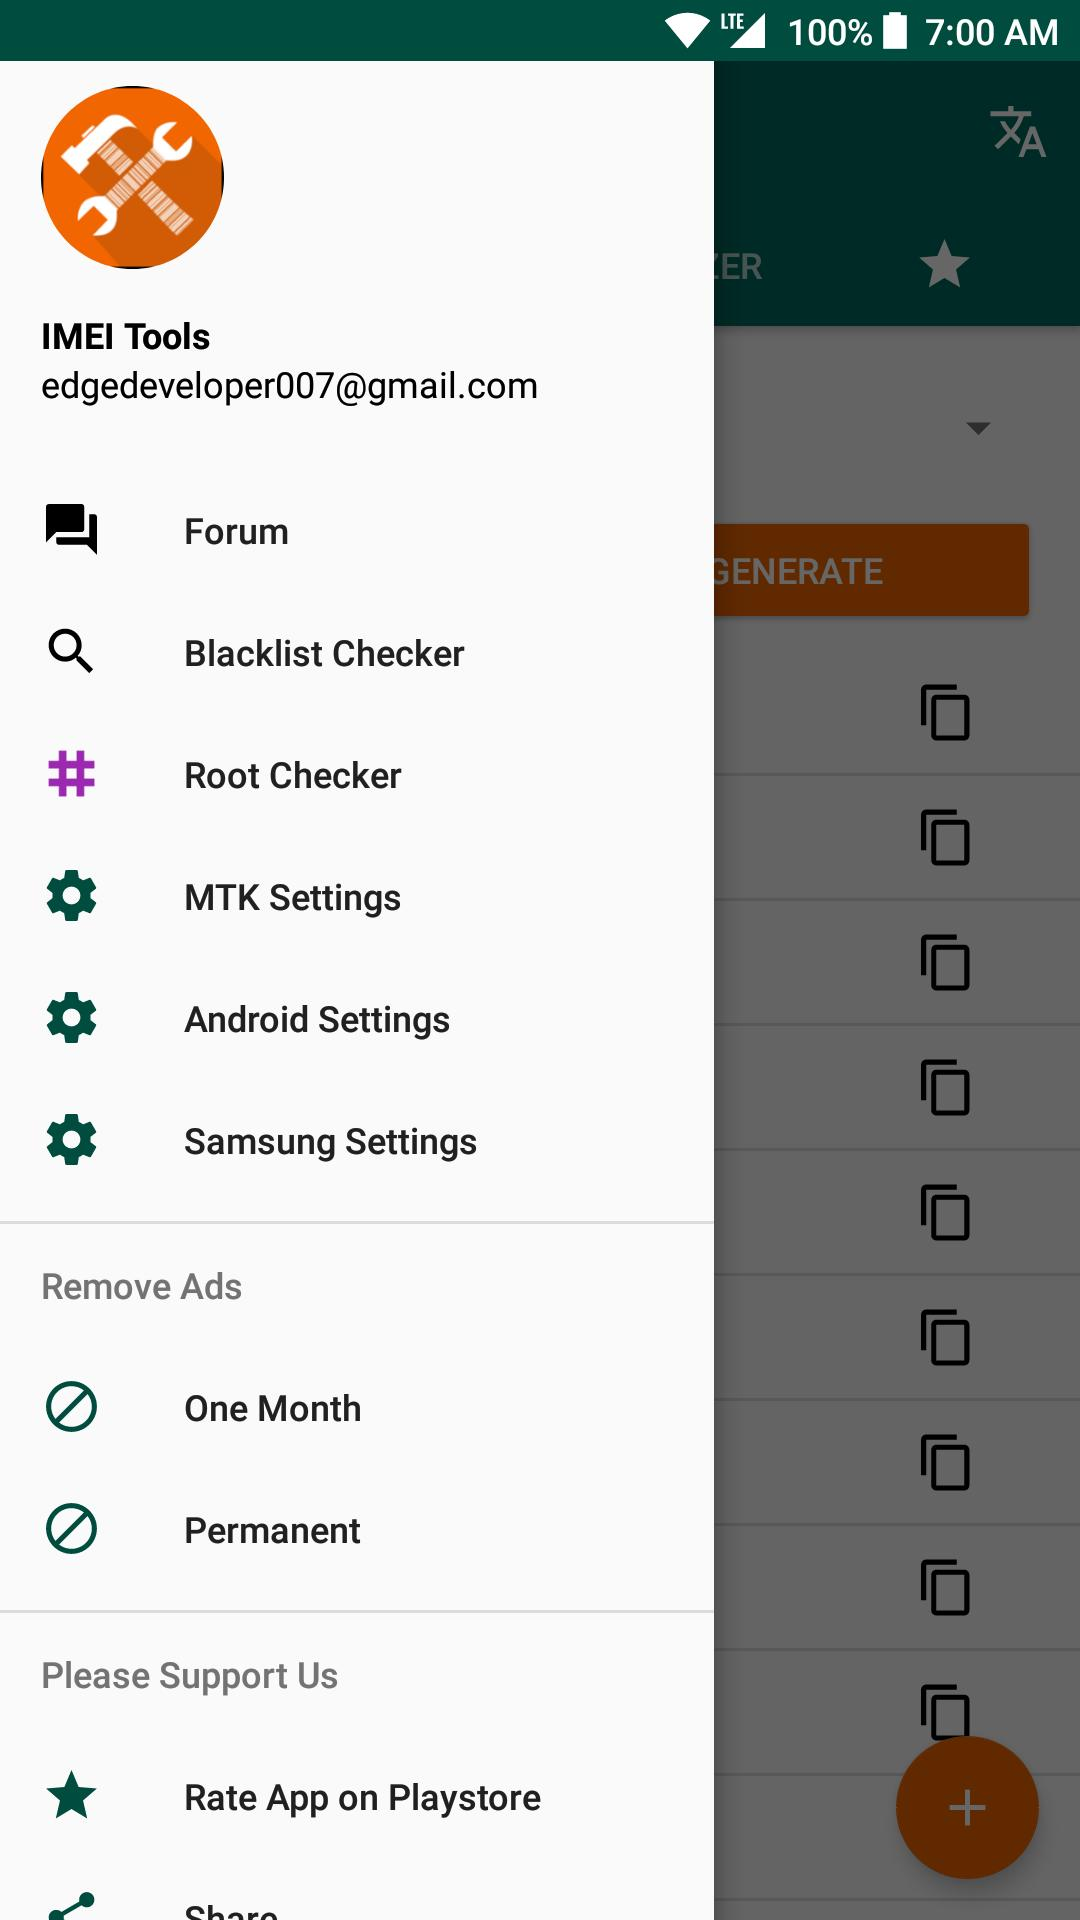 Samsung imei fix apk | Real imei Change for Android  2019-05-23